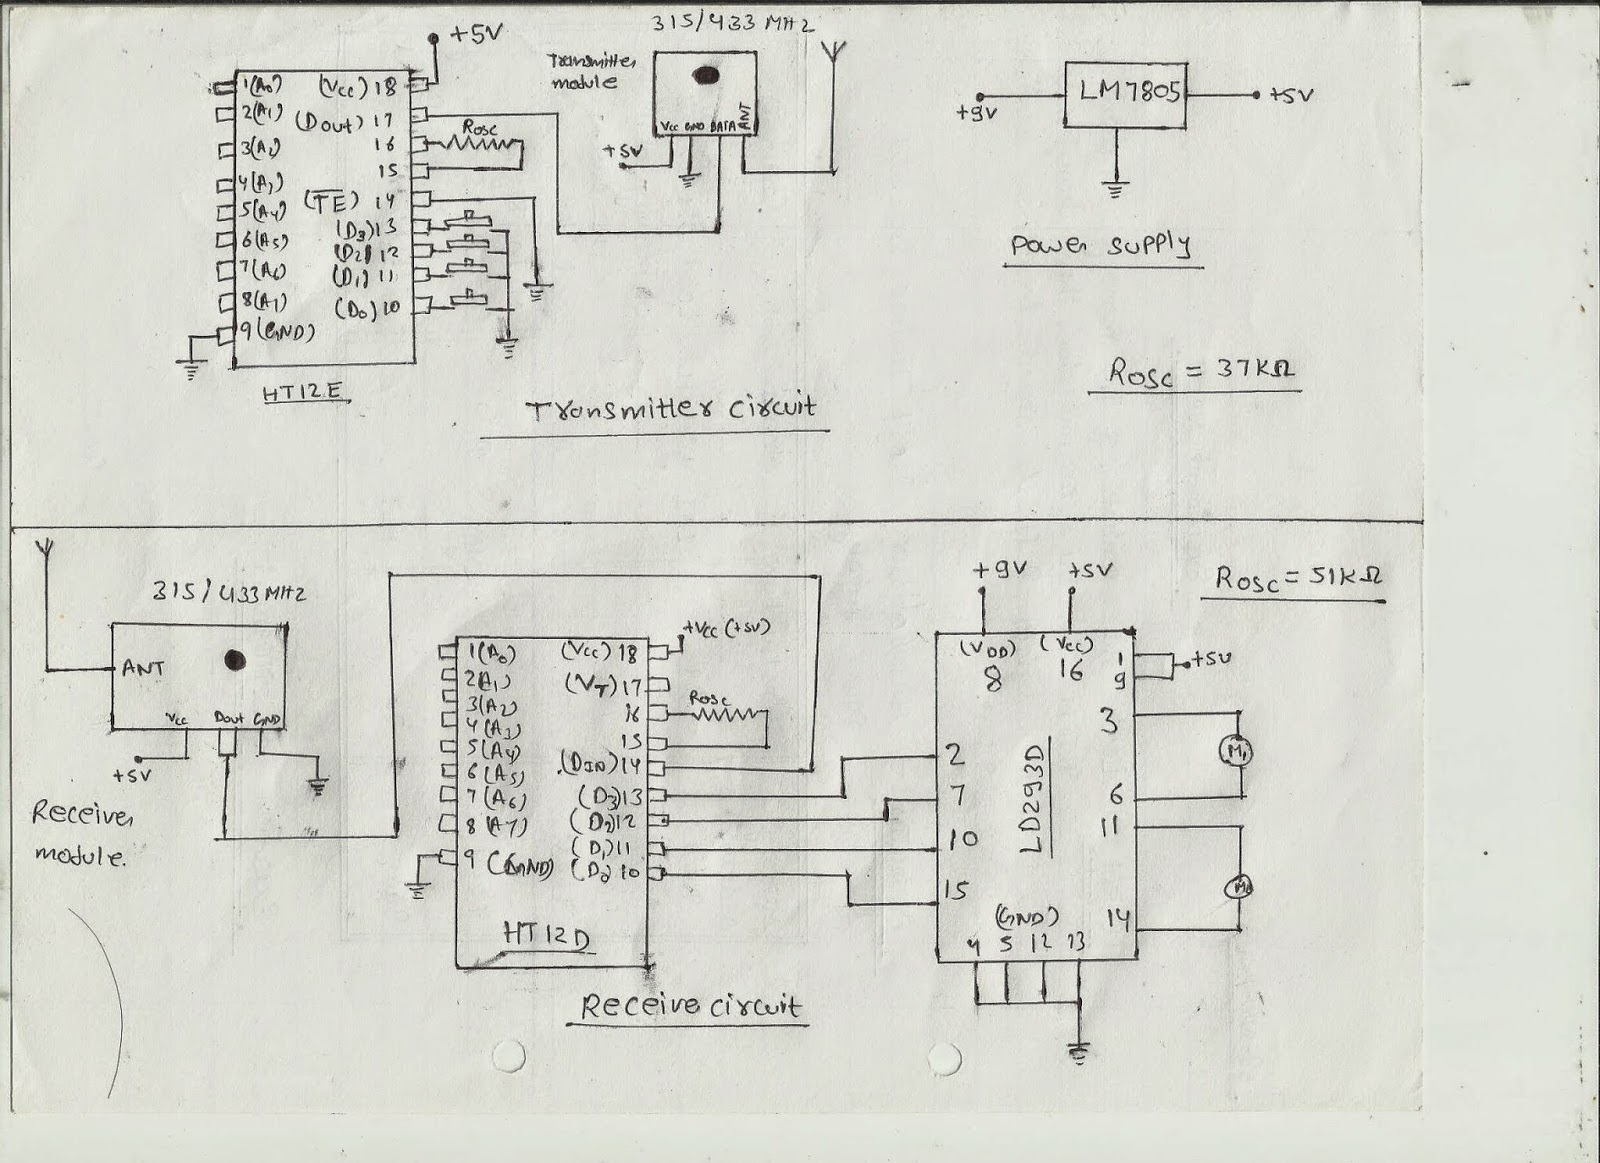 7388 ic circuit diagram electronics project: how to make a remote control car car circuit diagram ic l9302 #7